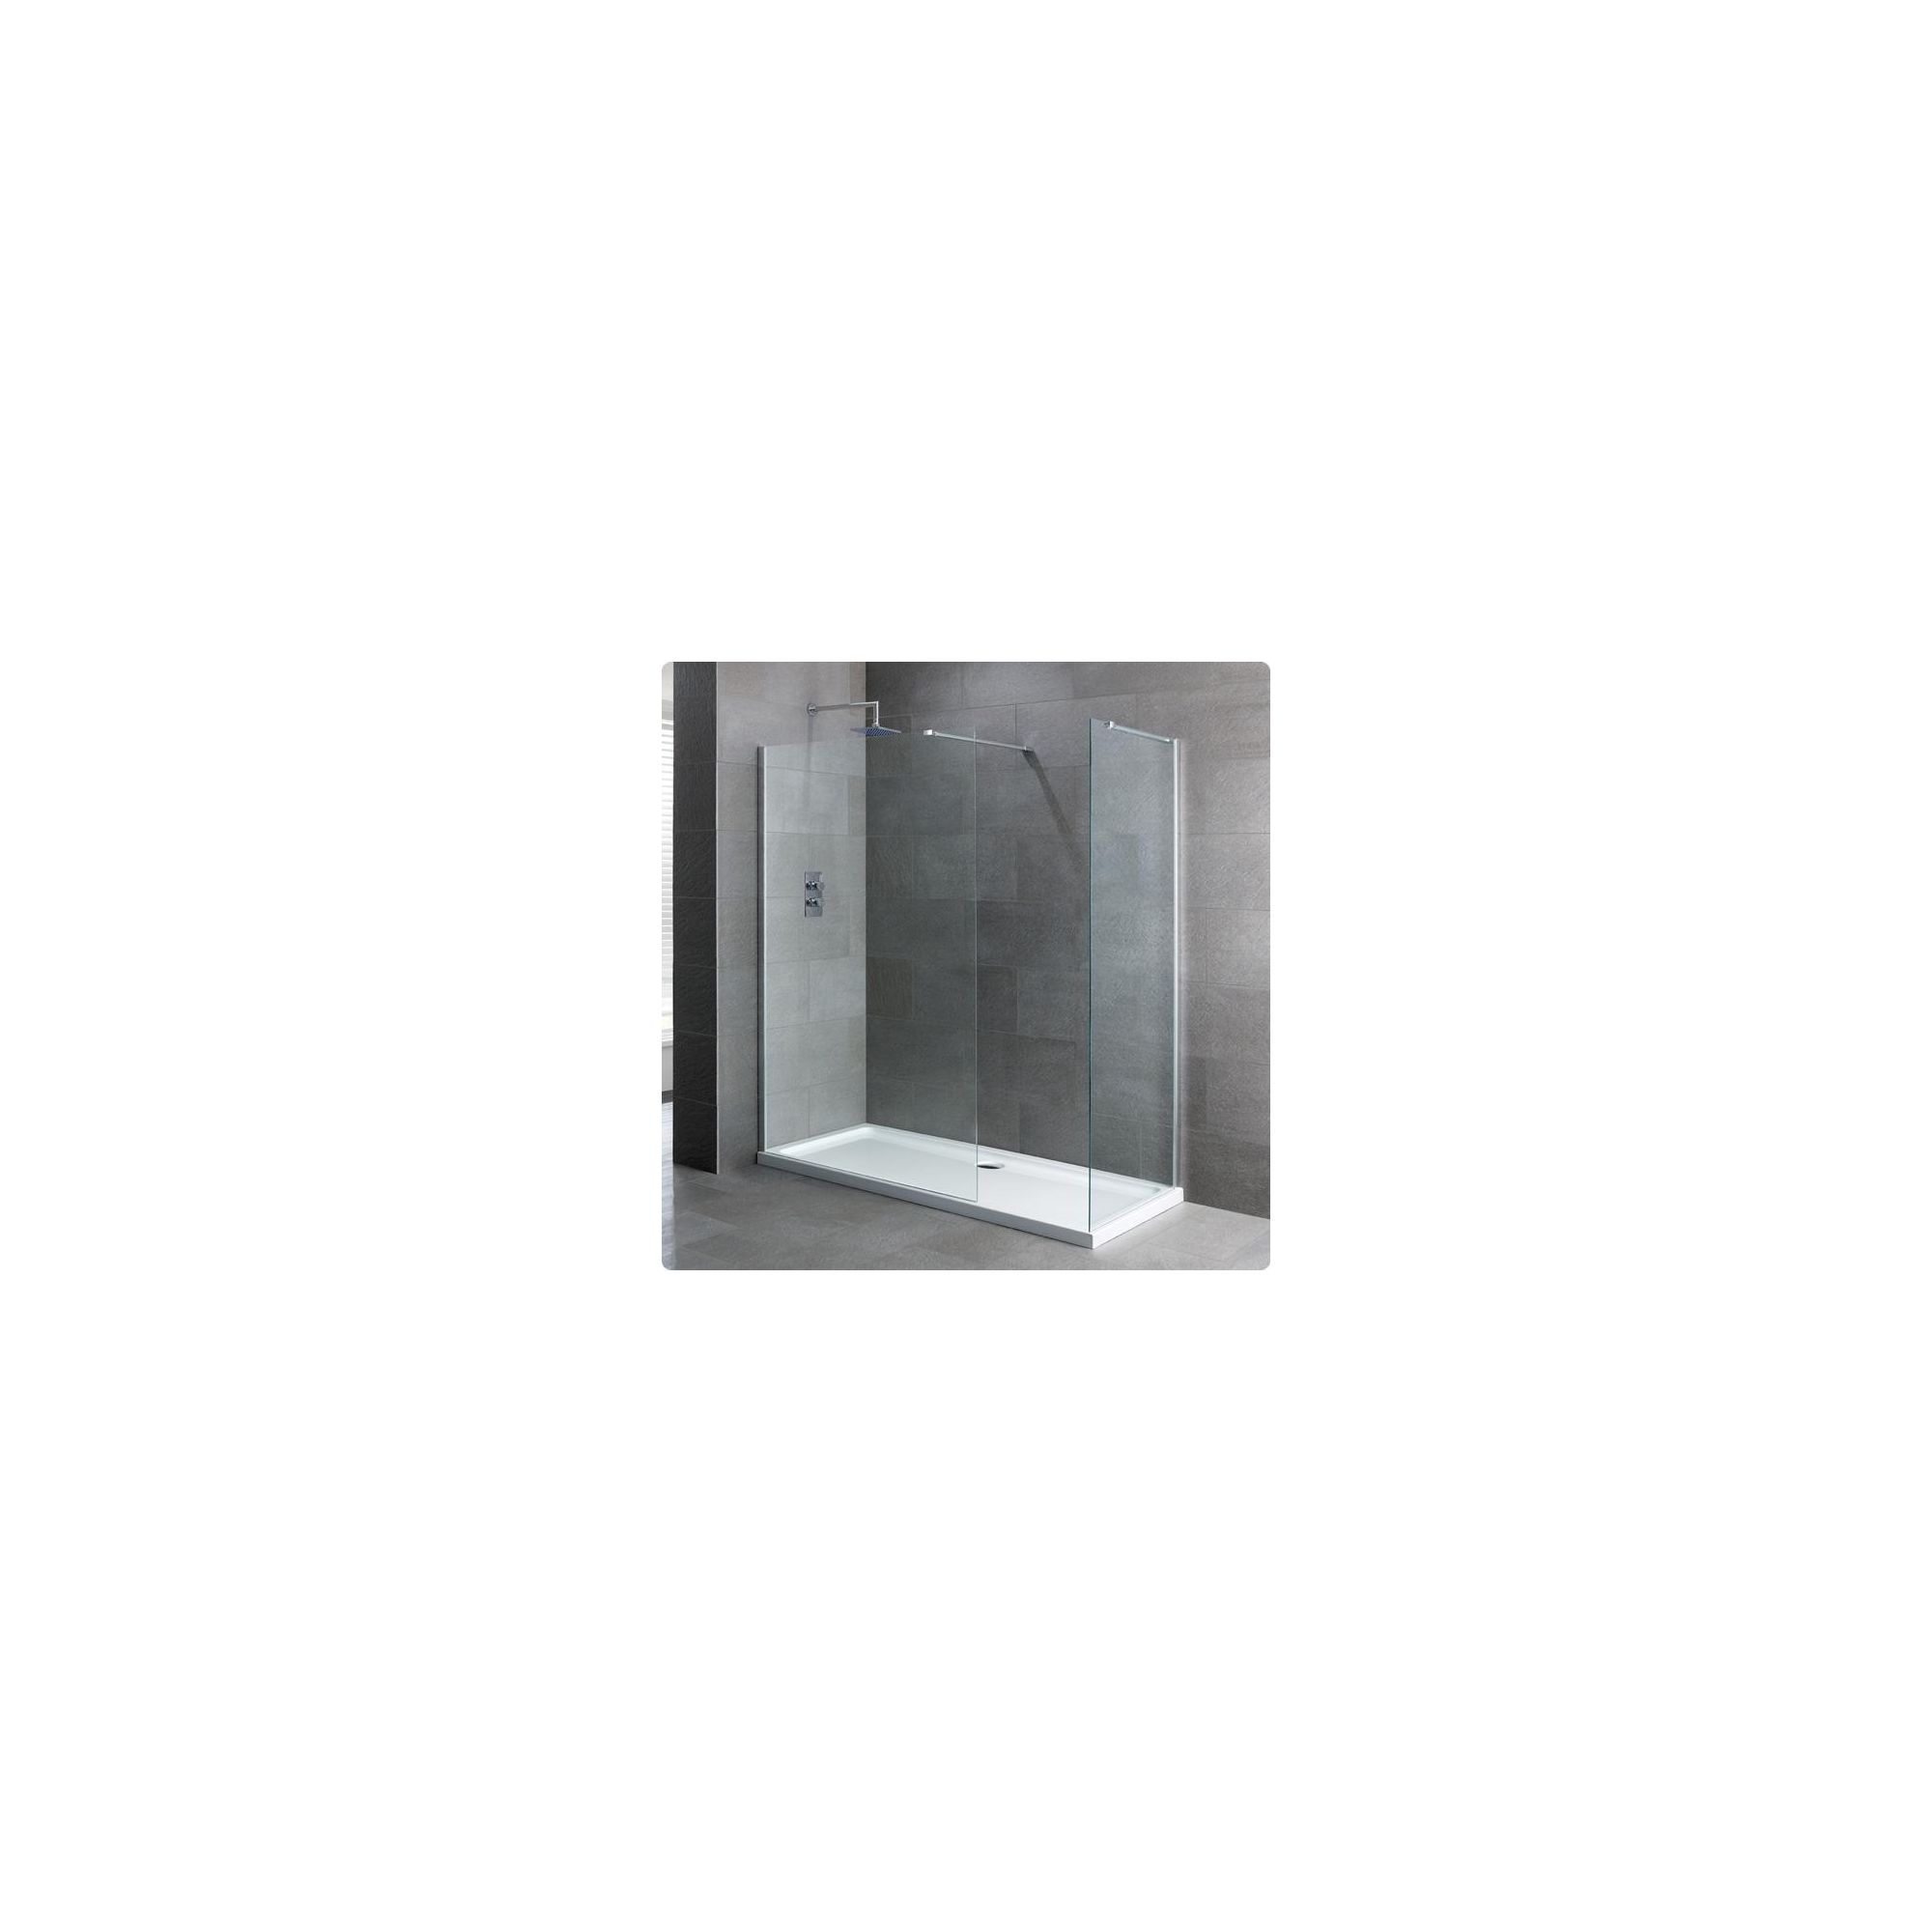 Duchy Select Silver Walk-In Shower Enclosure 1400mm x 900mm, Standard Tray, 6mm Glass at Tescos Direct